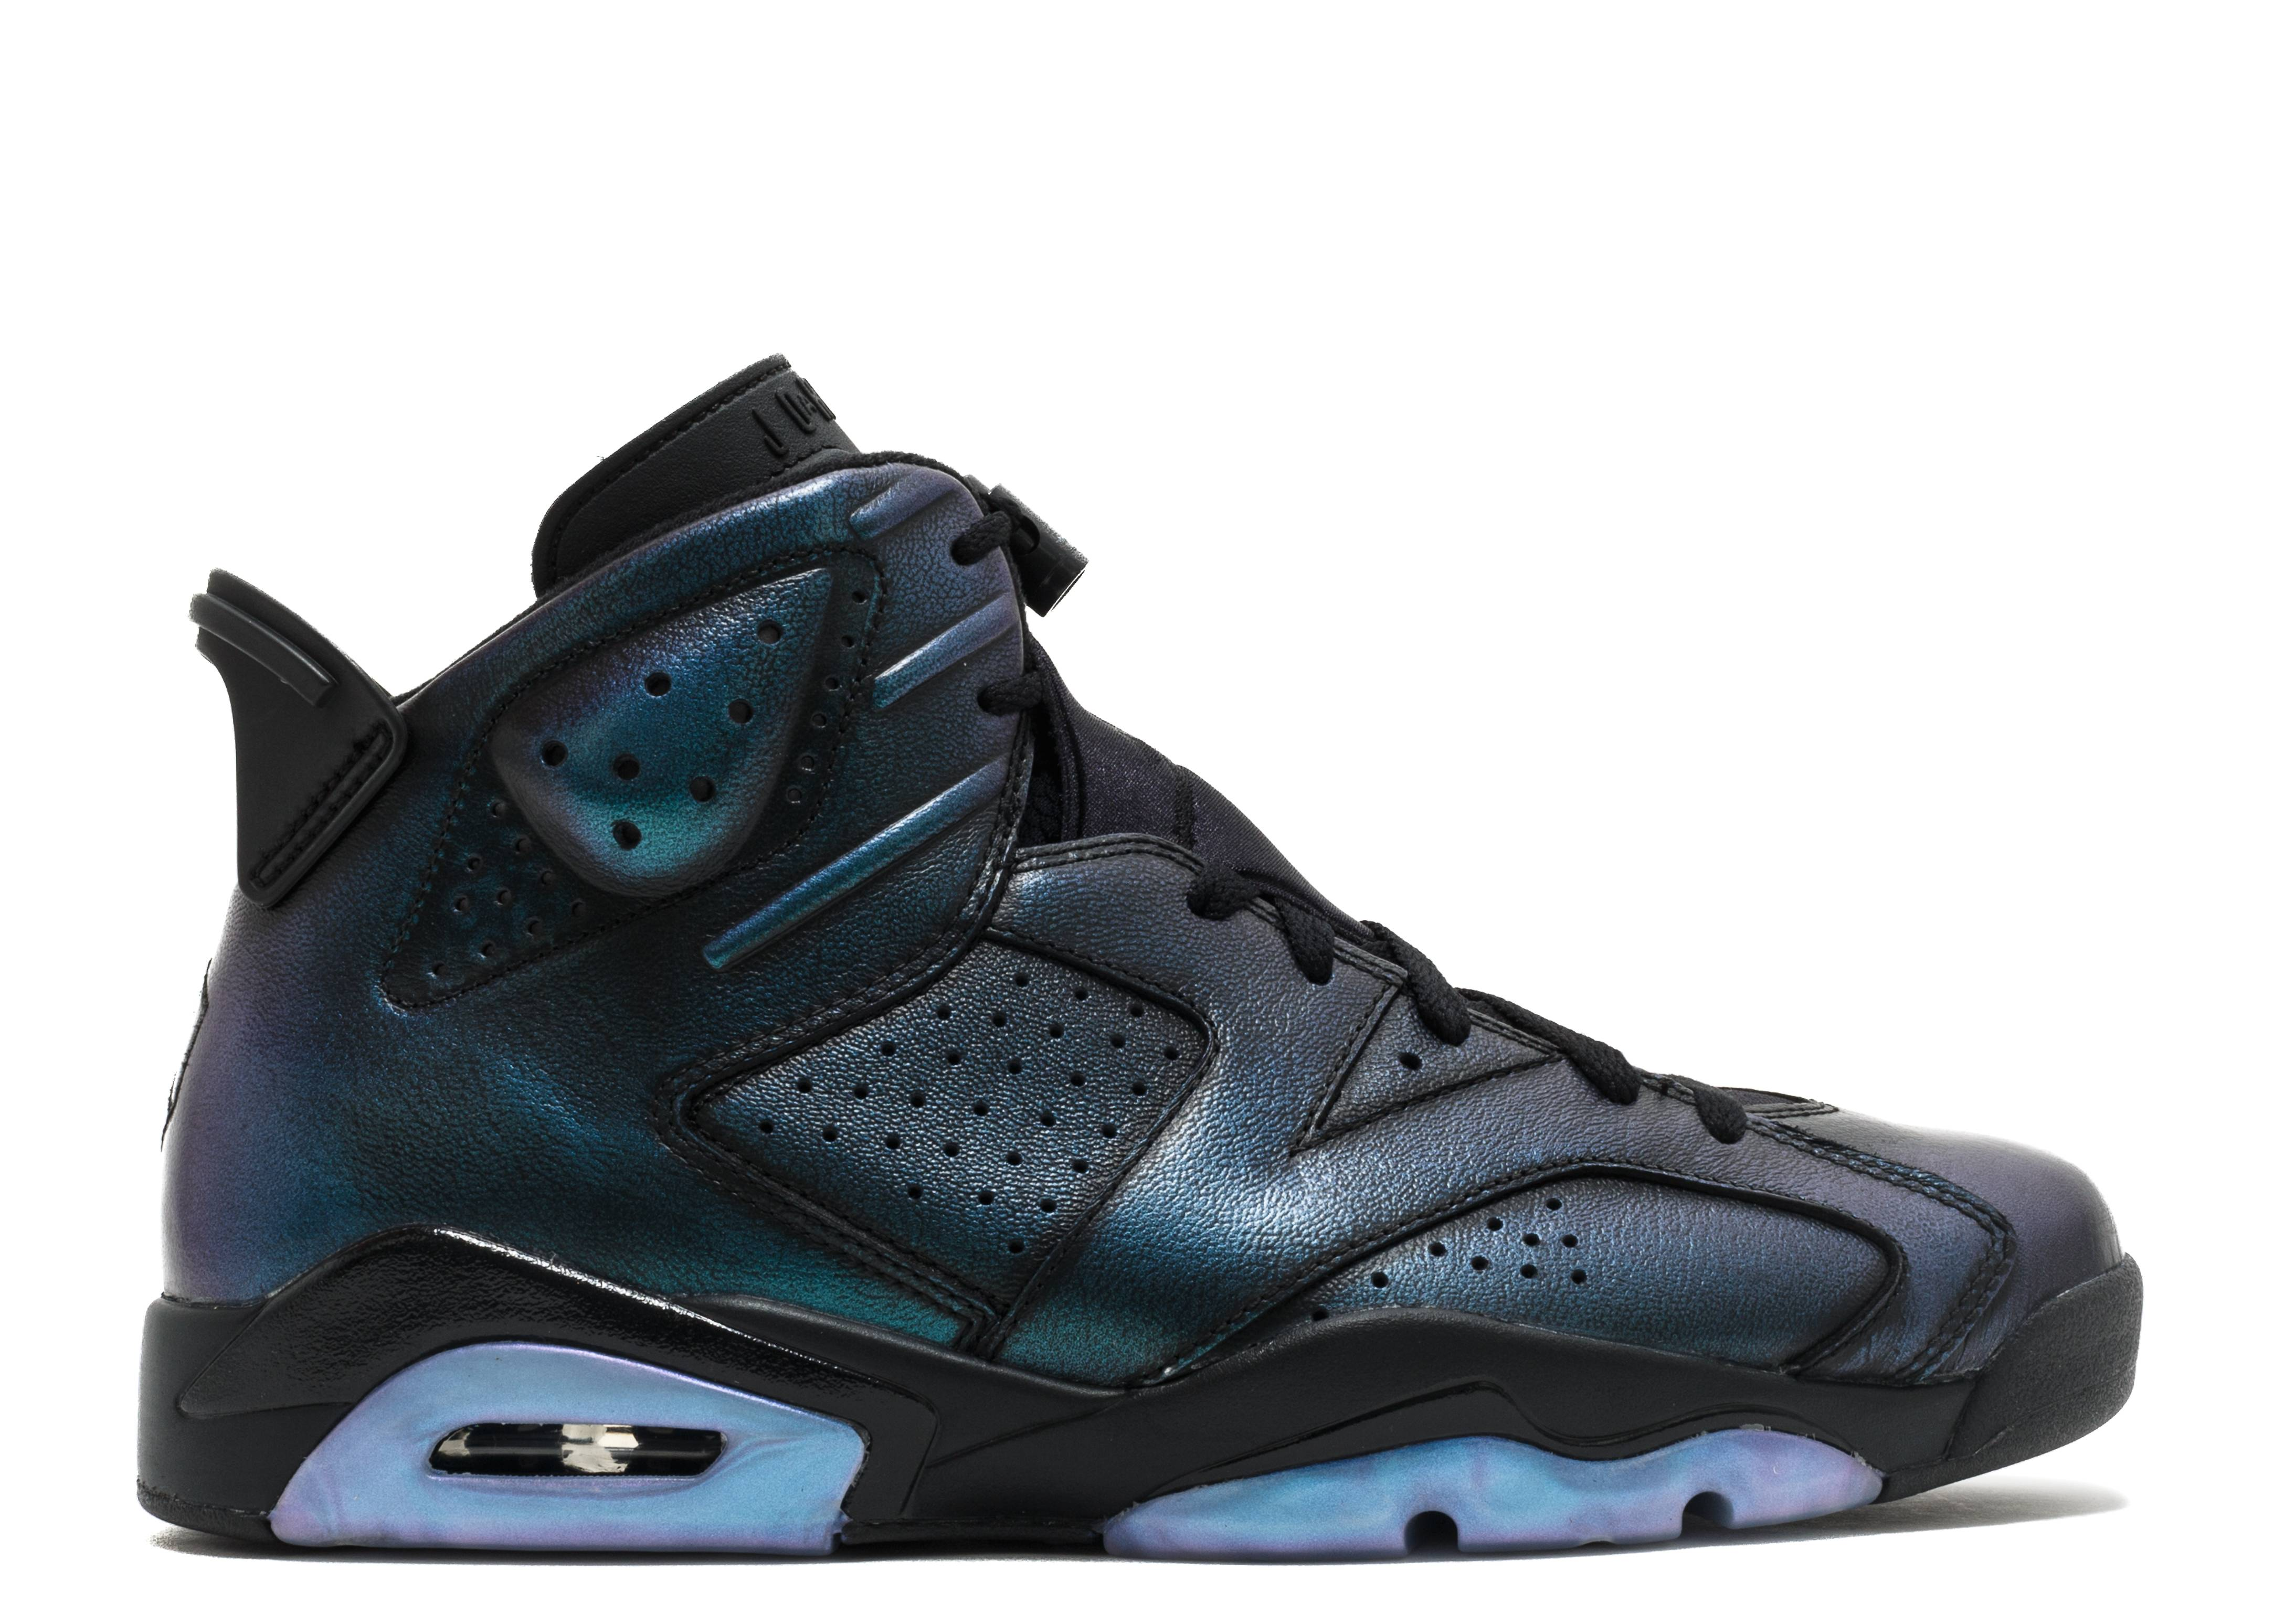 quality design 3f958 d8851 air jordan 6 retro as